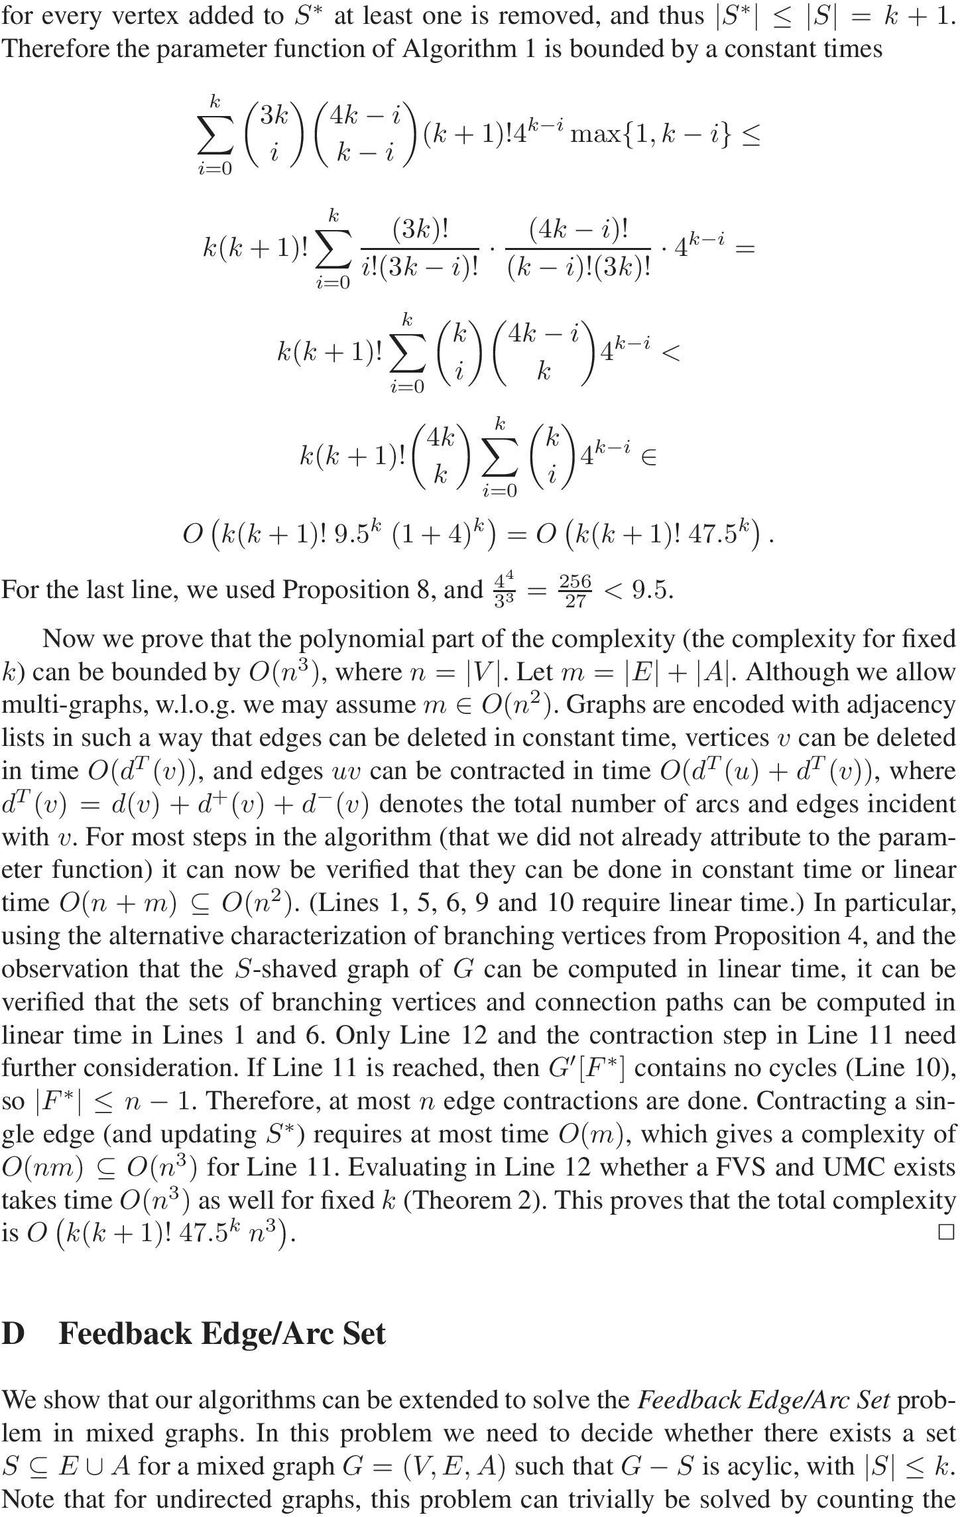 5 k (1+4) k) = O ( k(k +1)! 47.5 k). For the last line, we used Proposition 8, and 44 3 3 = 256 27 < 9.5. Now we prove that the polynomial part of the complexity (the complexity for fixed k) can be bounded by O(n 3 ), where n = V.